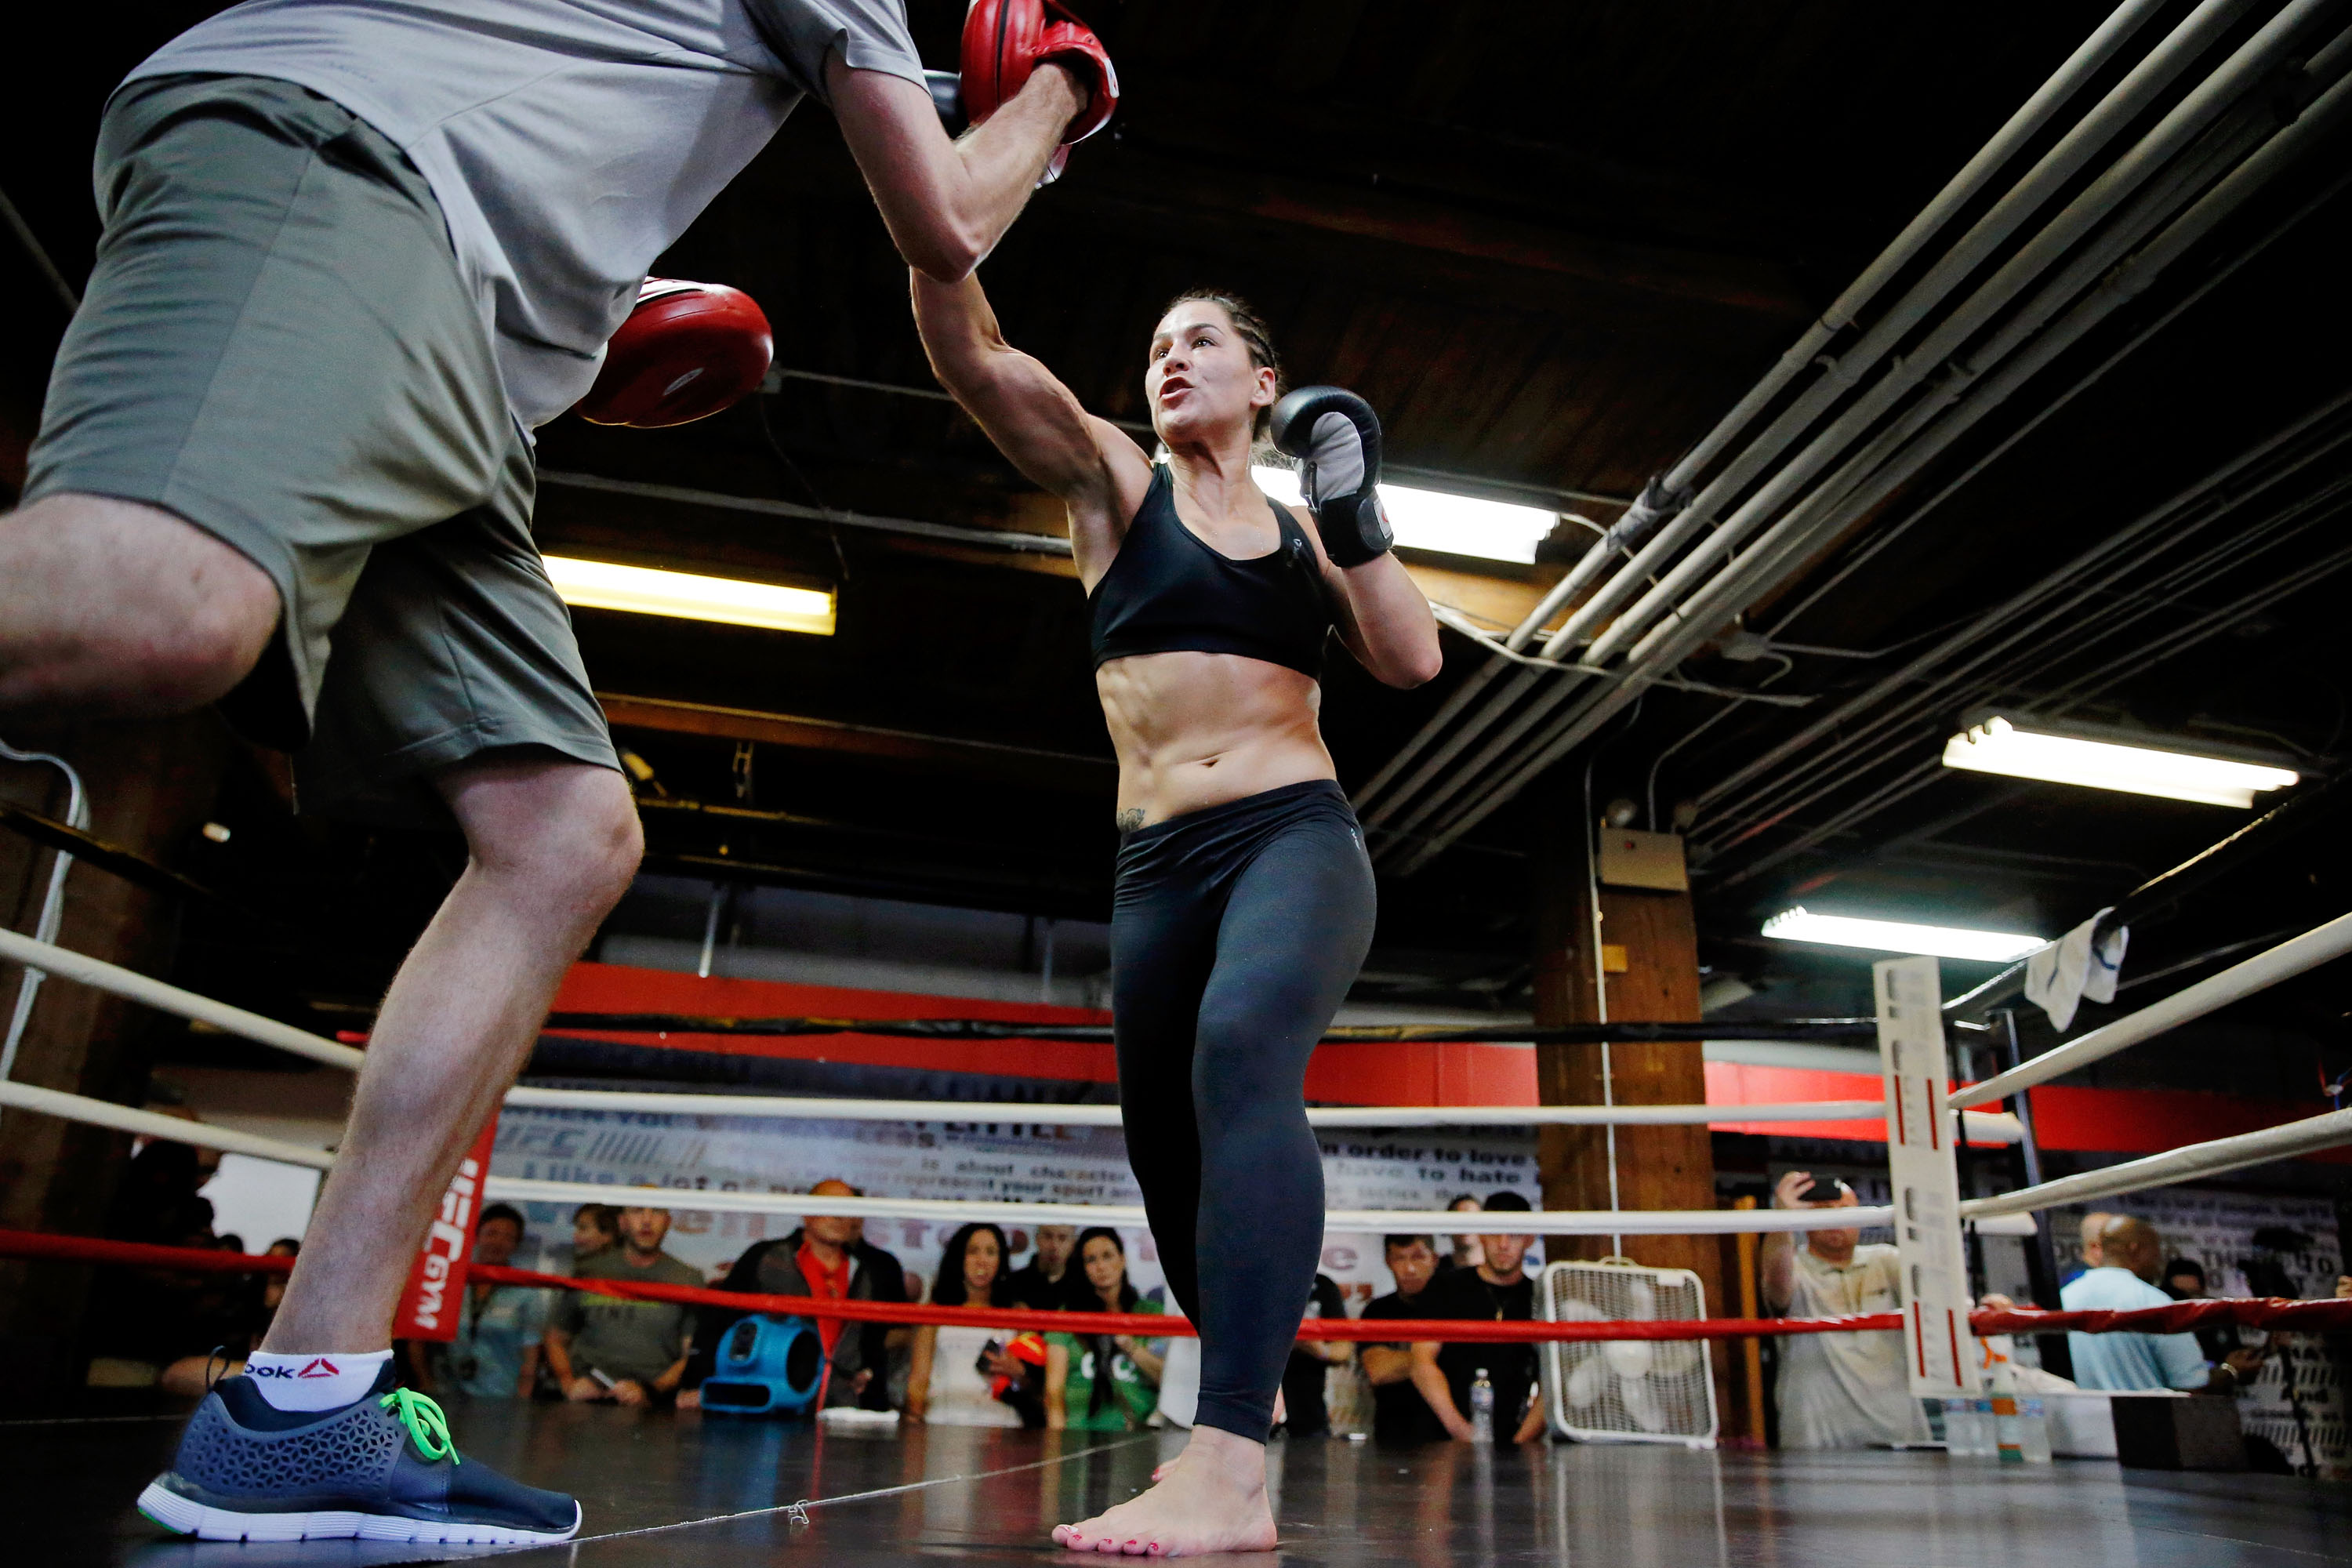 Mma and boxing workouts - 3 10